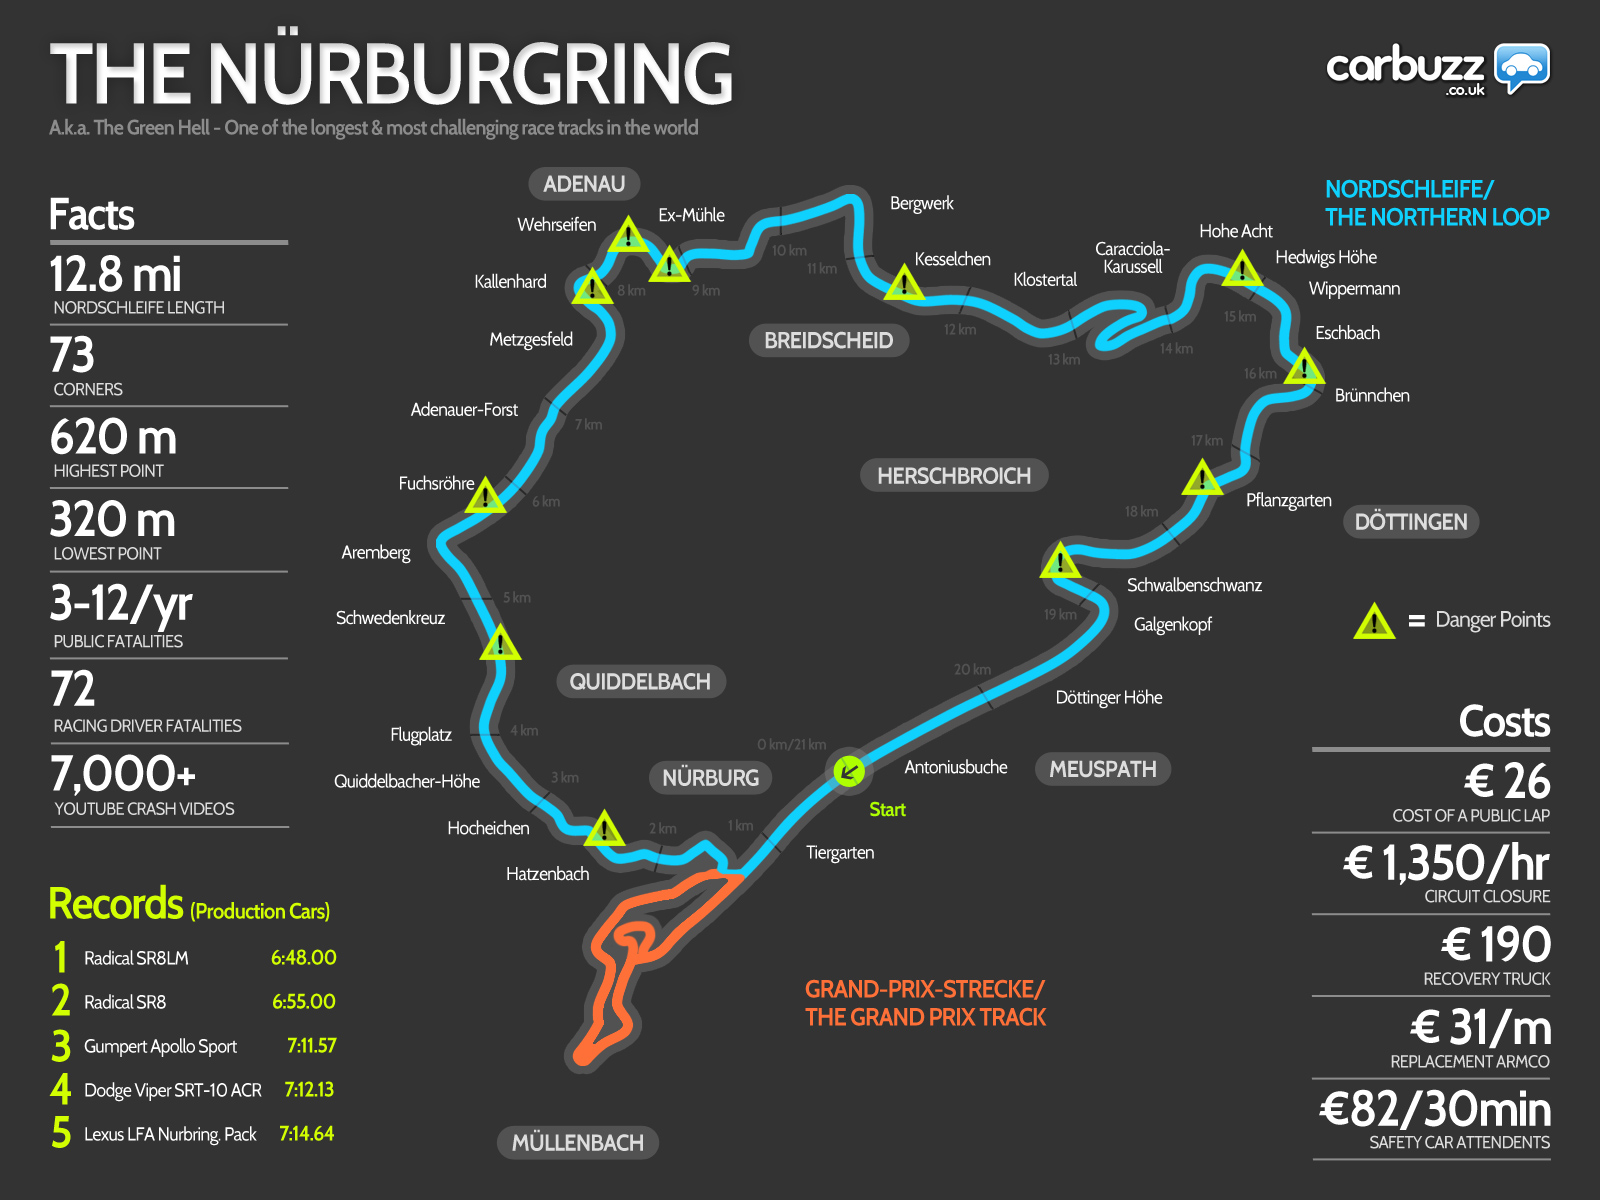 circuit du nurburgring l 39 essentiel en 1 image infographie. Black Bedroom Furniture Sets. Home Design Ideas